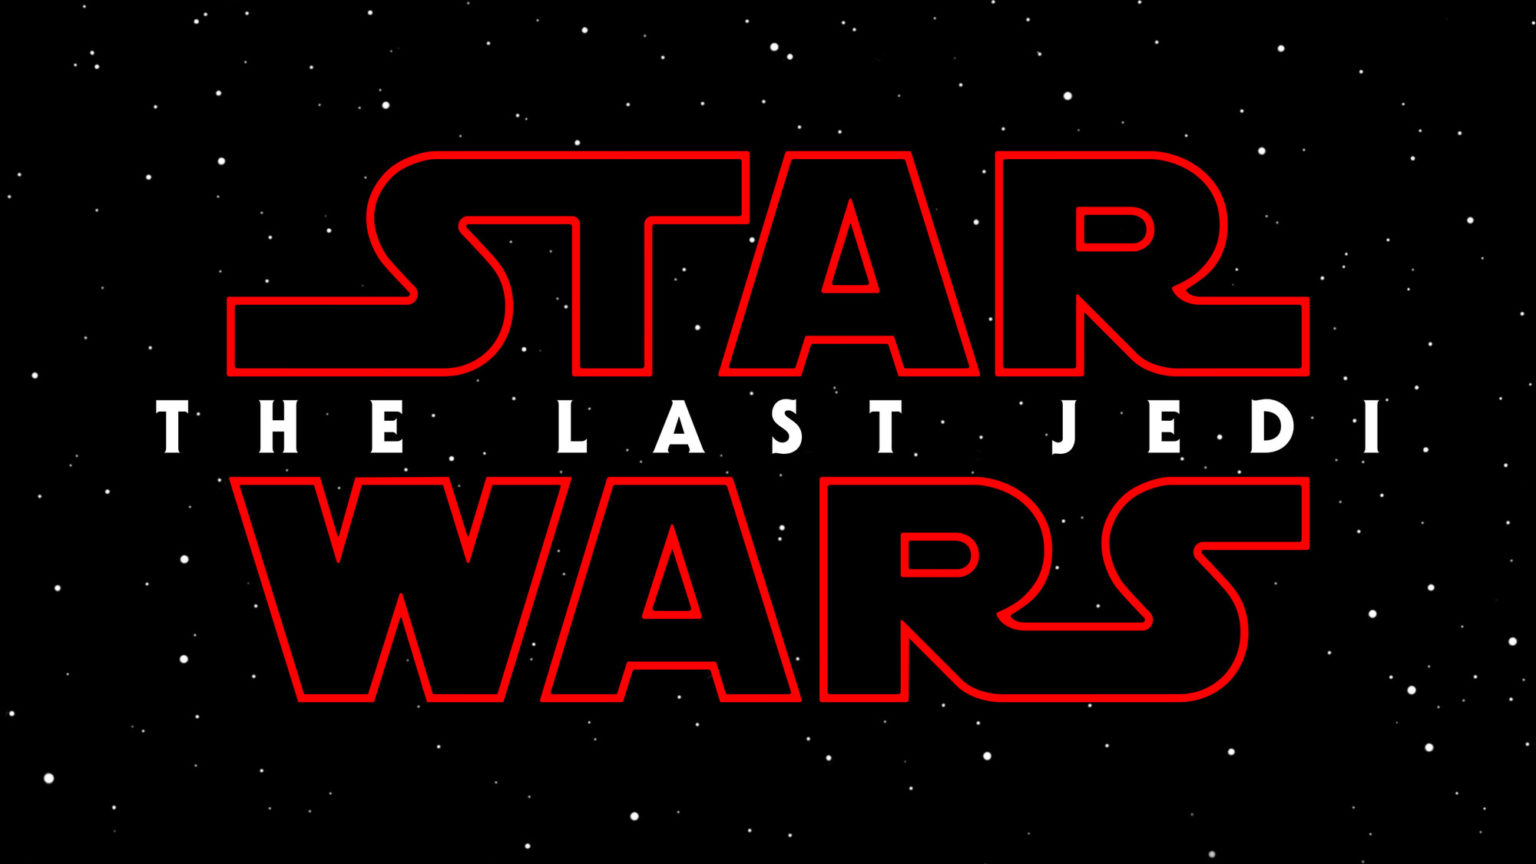 Star Wars: The Last Jedi es el título final de Star Wars: Episode VIII